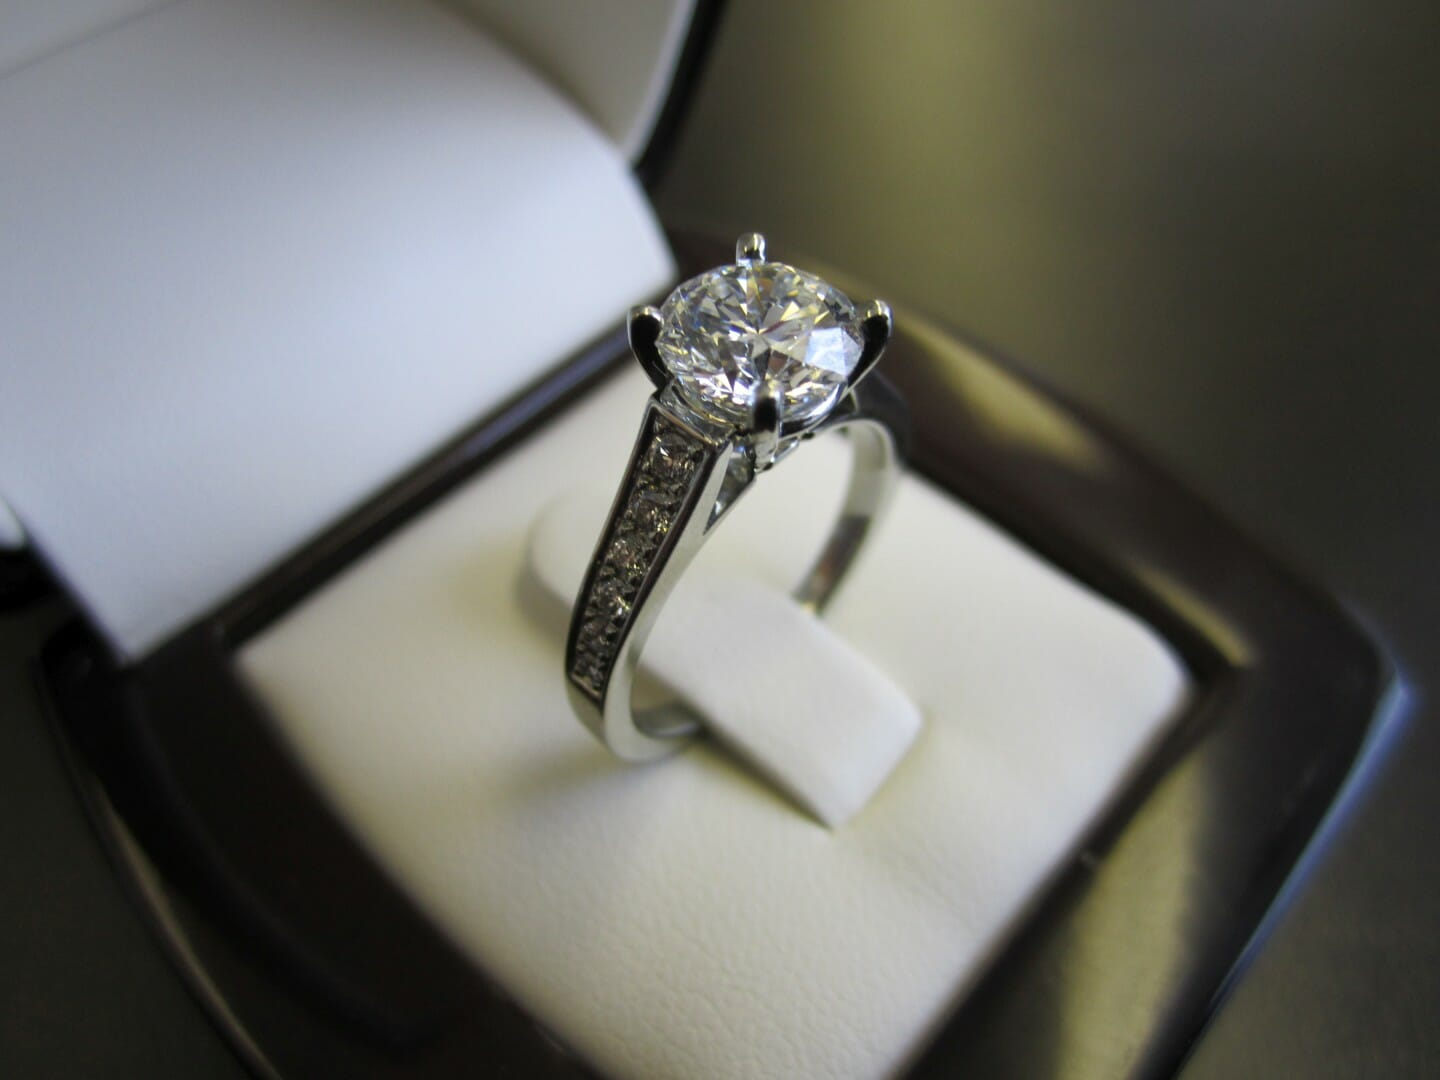 Picture of 1.55ct Round Brilliant Diamond with a Pave Set 19K White Gold Engagement Ring